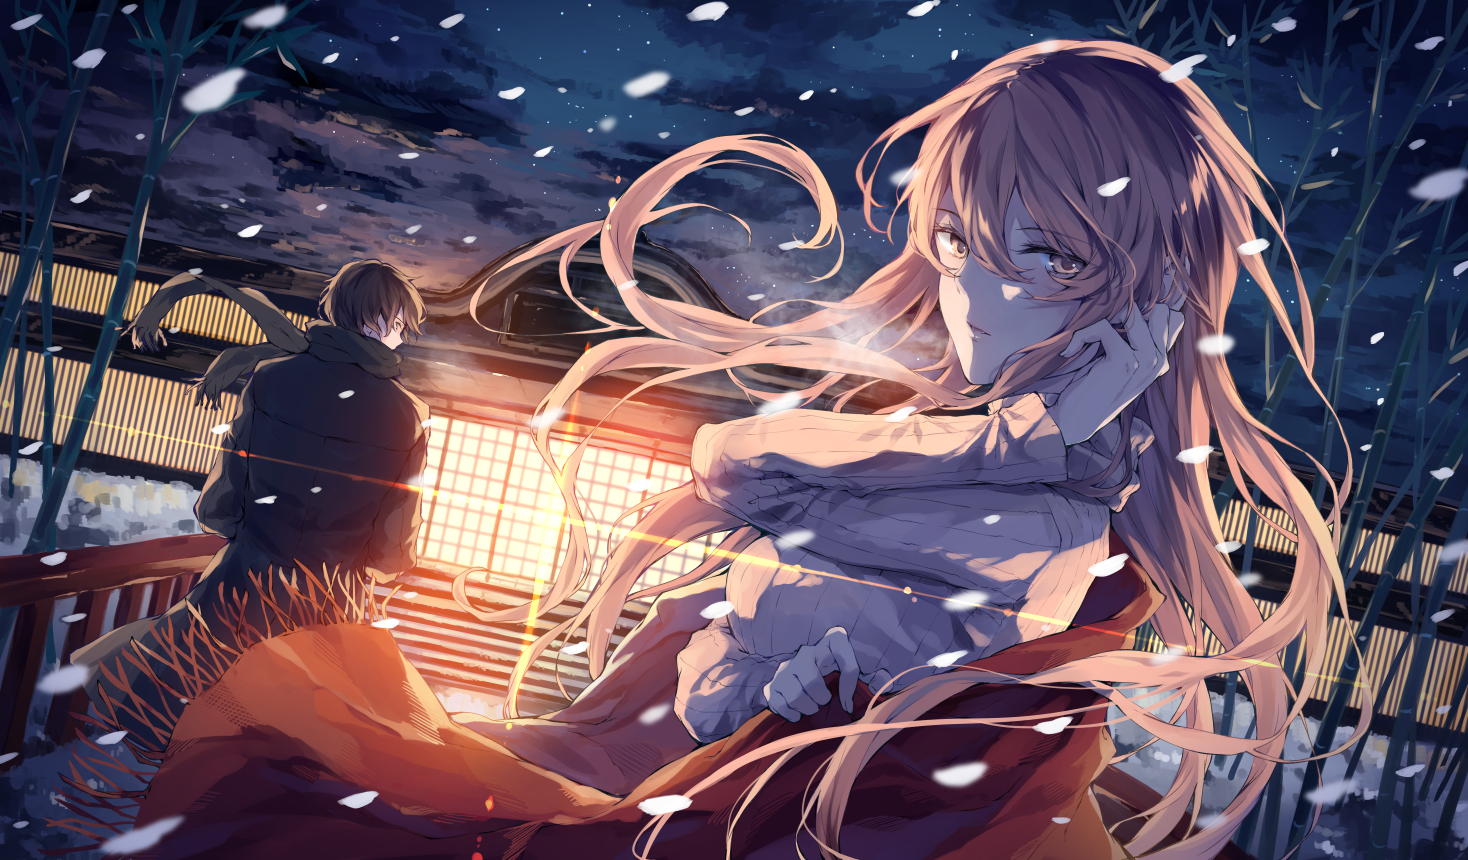 Anime girl in winter Images